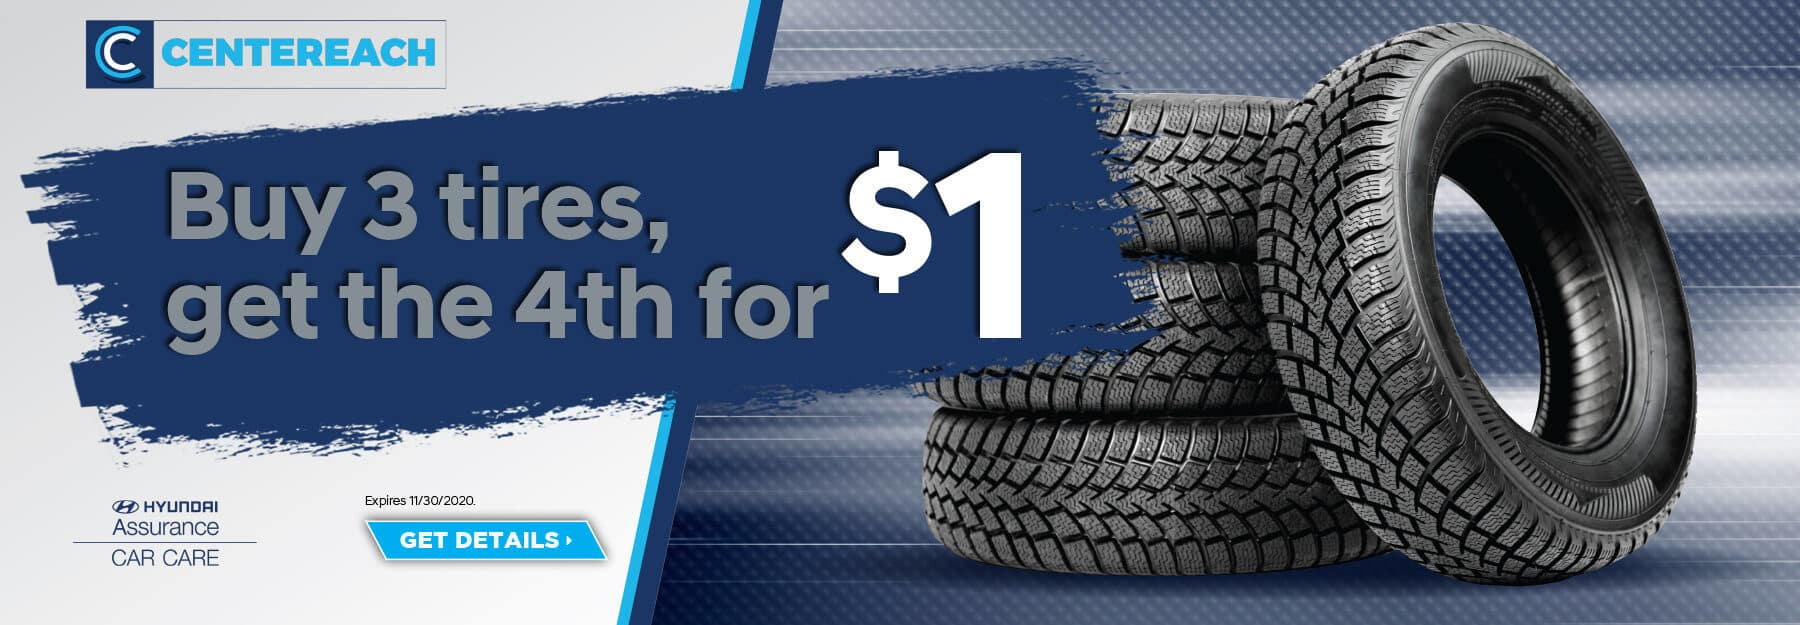 Tire Coupon Promo